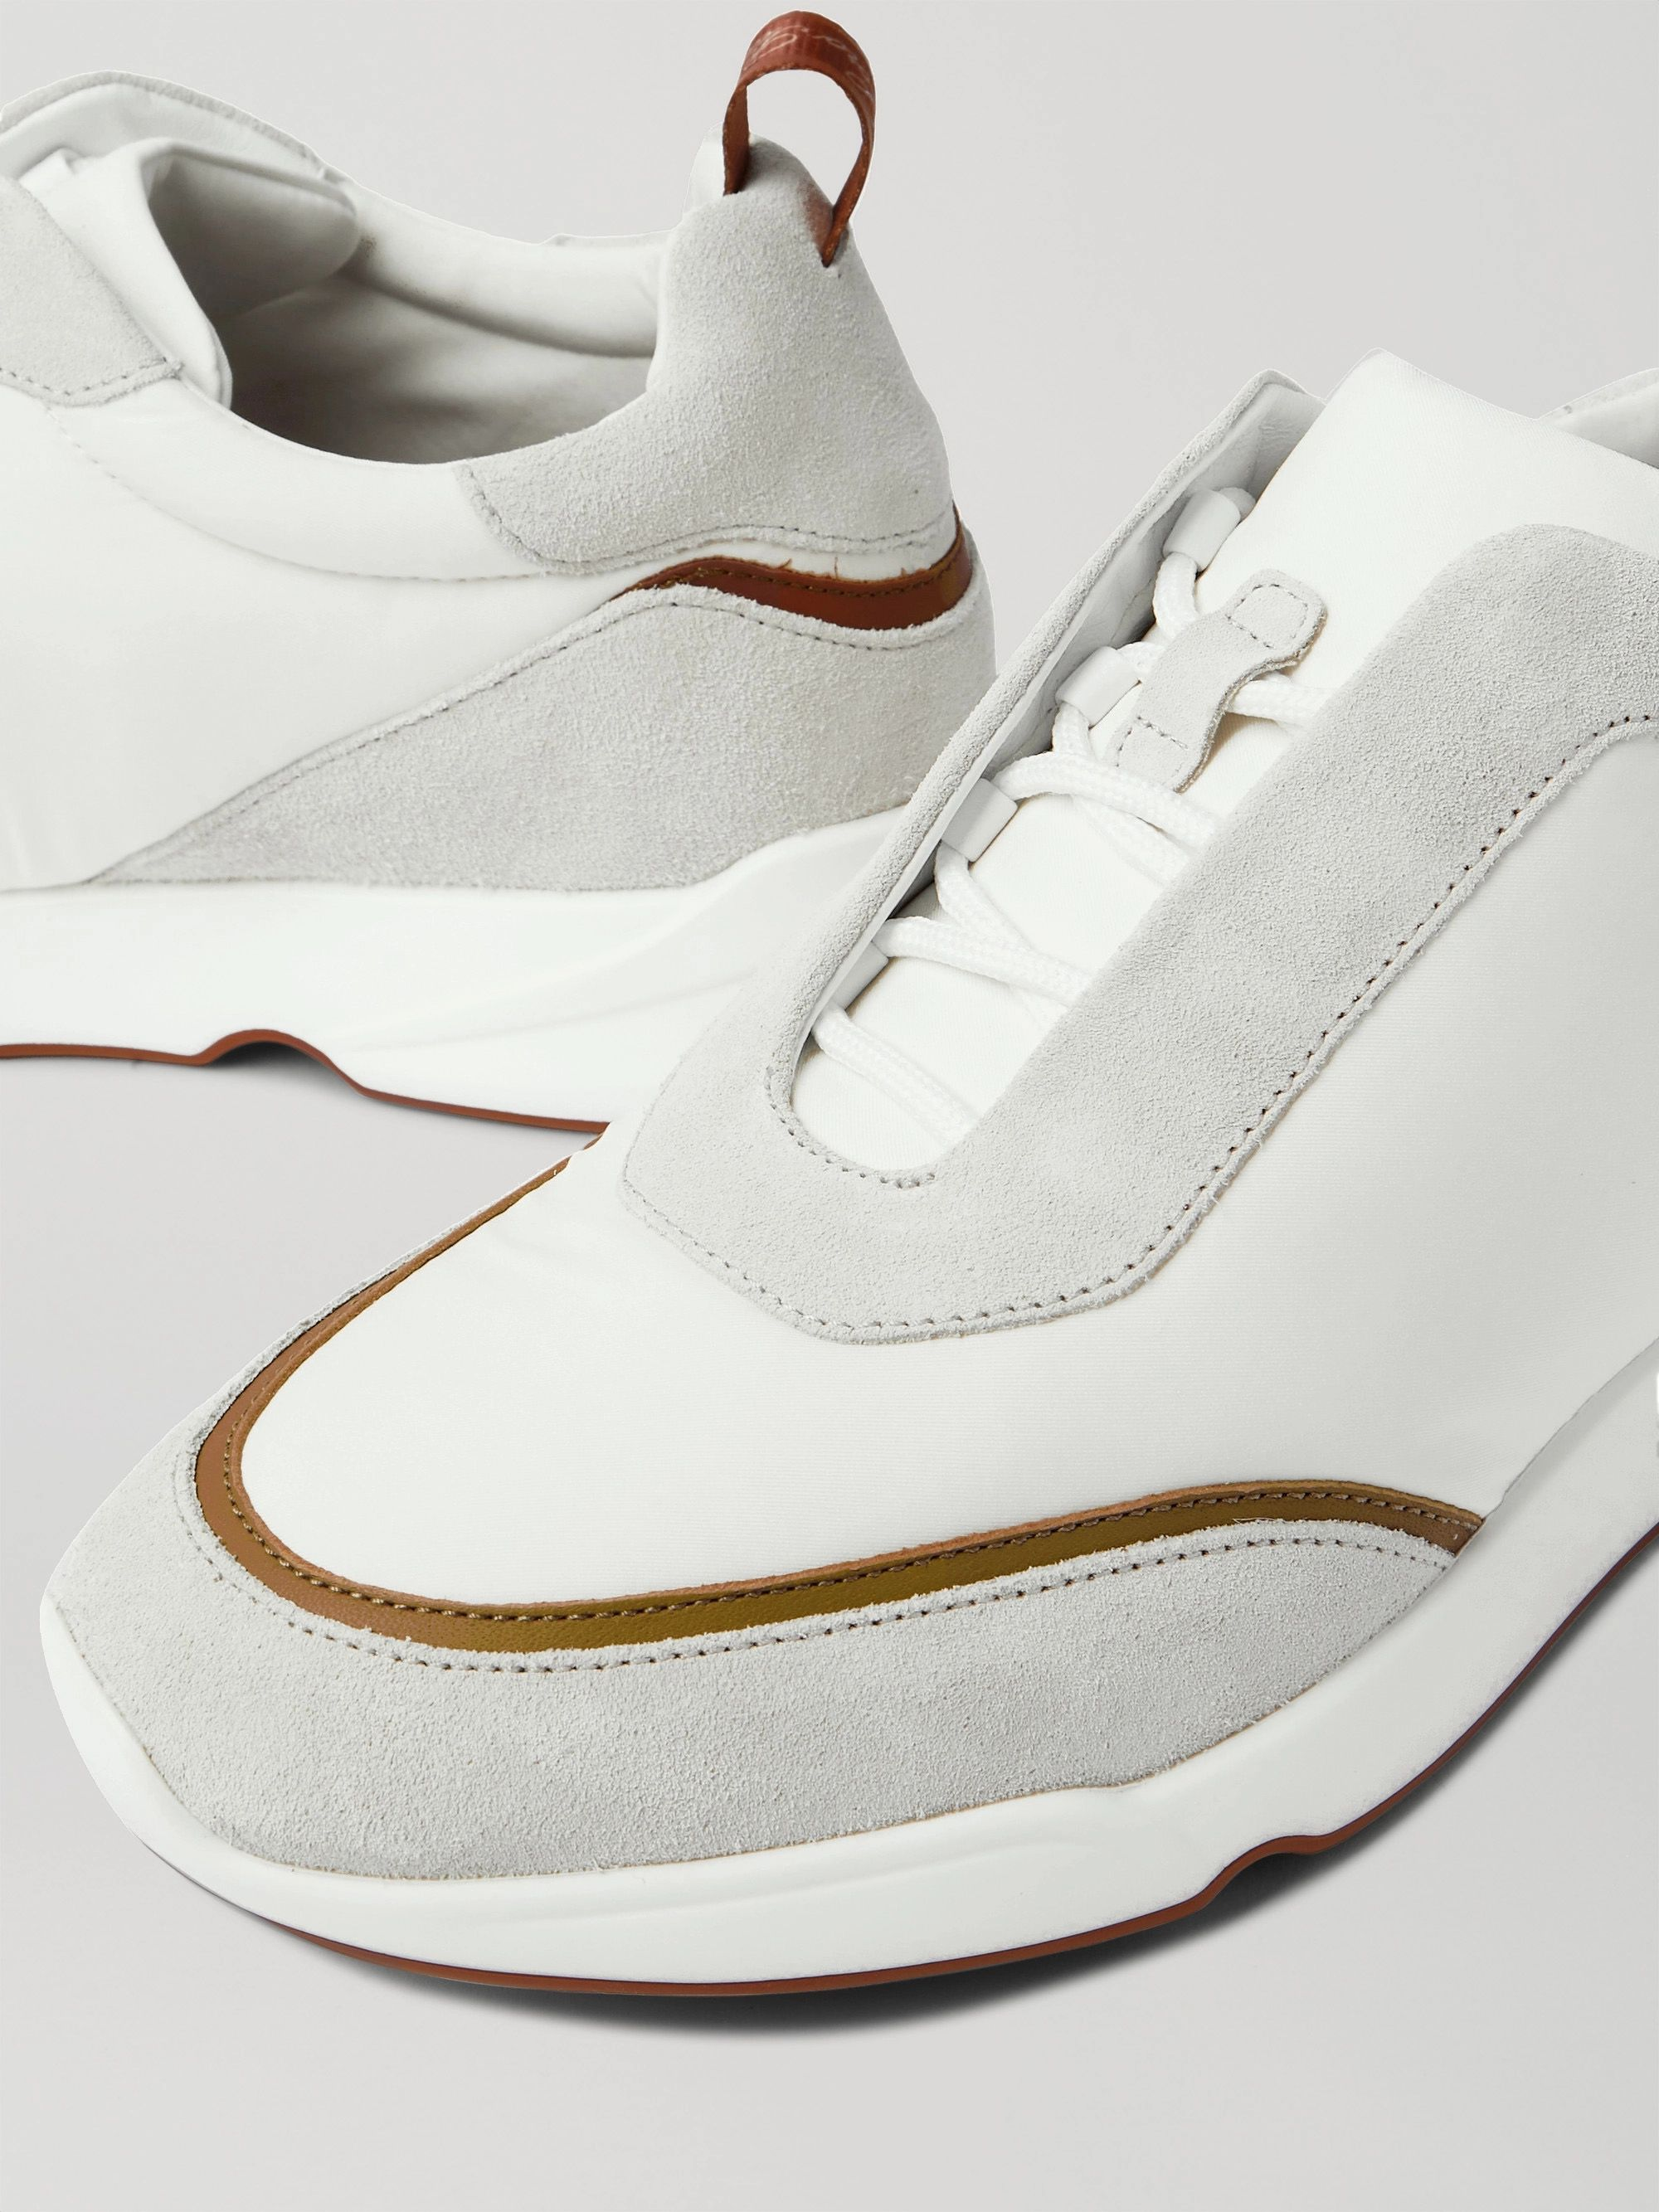 LORO PIANA Modular Walk Leather-Trimmed Canvas and Suede Sneakers